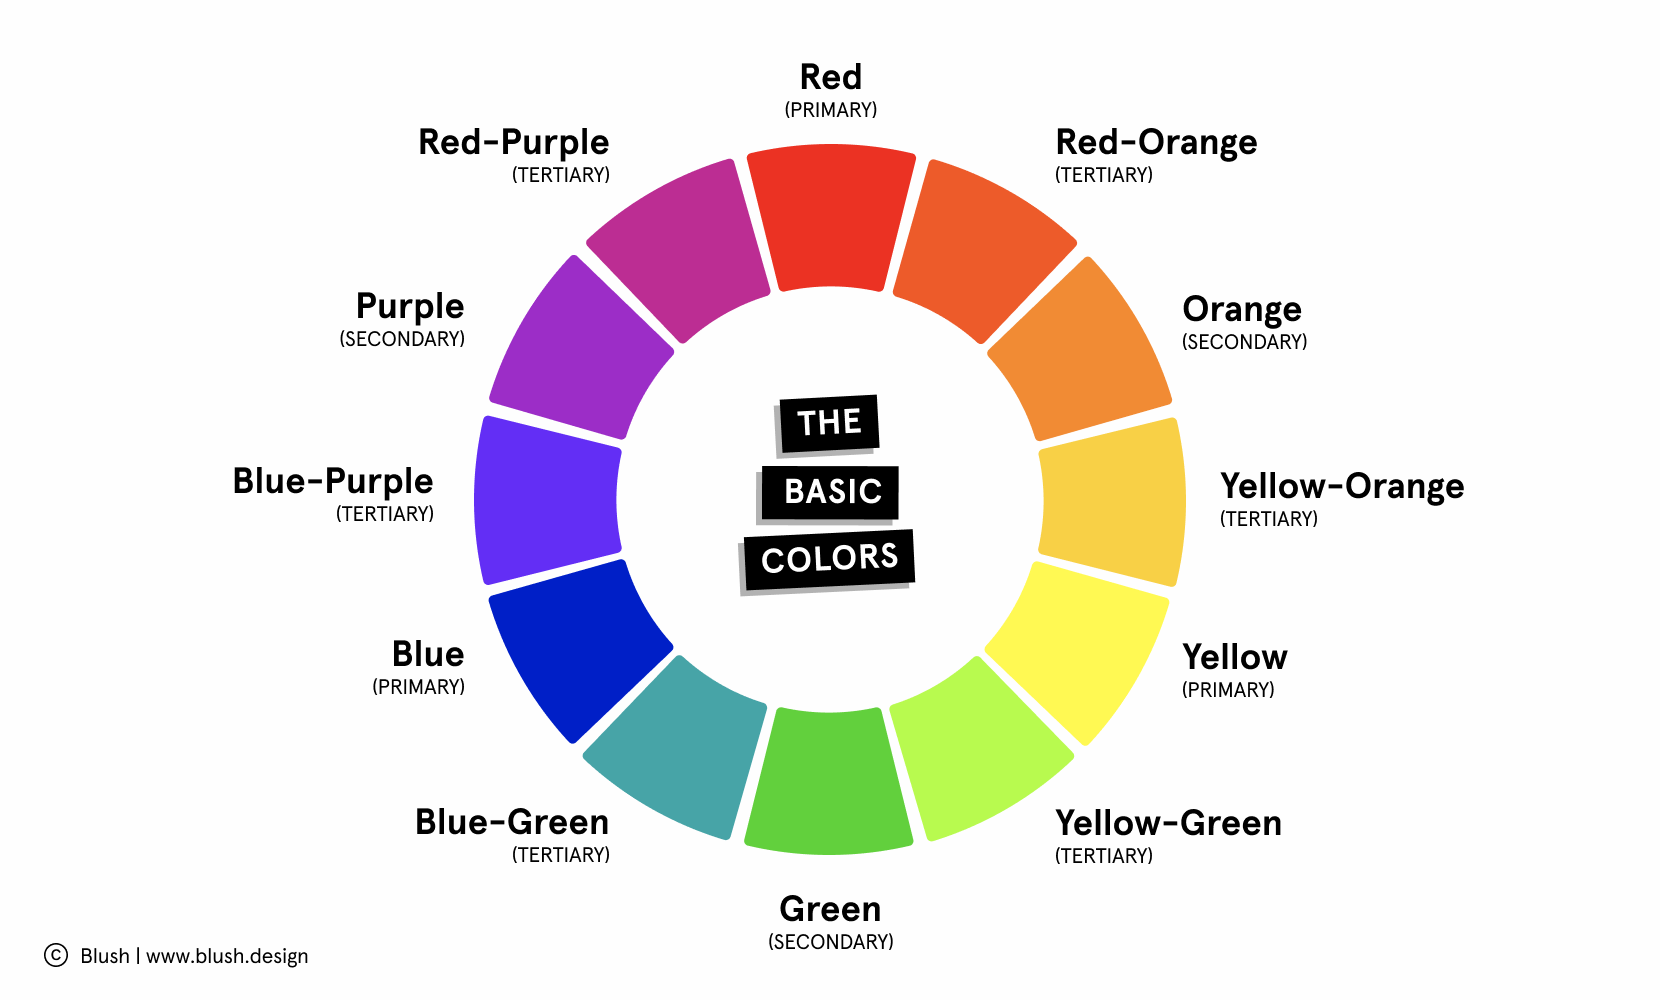 the basic colors